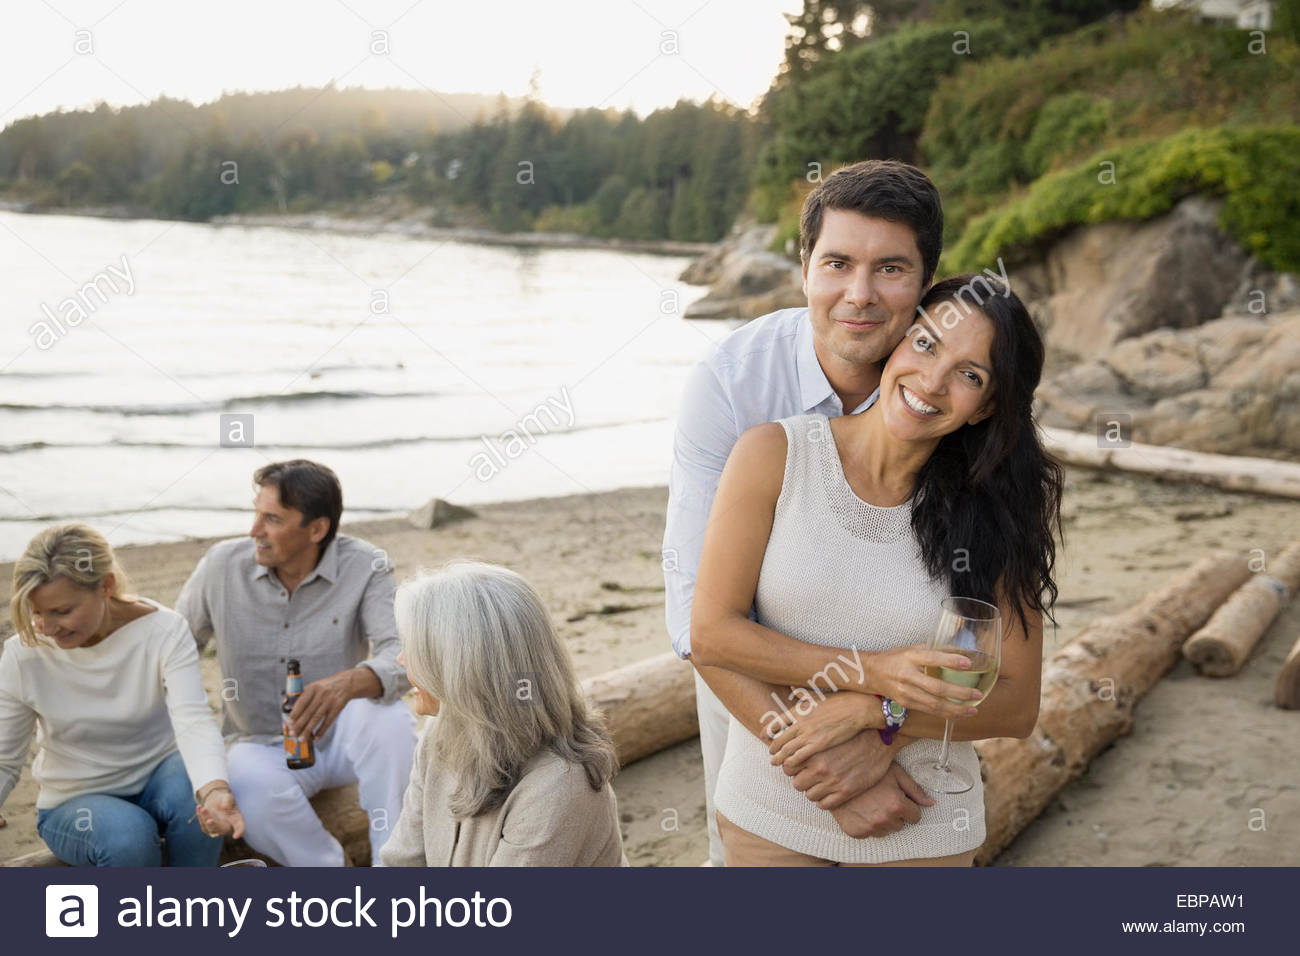 Portrait of smiling couple with friends on beach - Stock Image